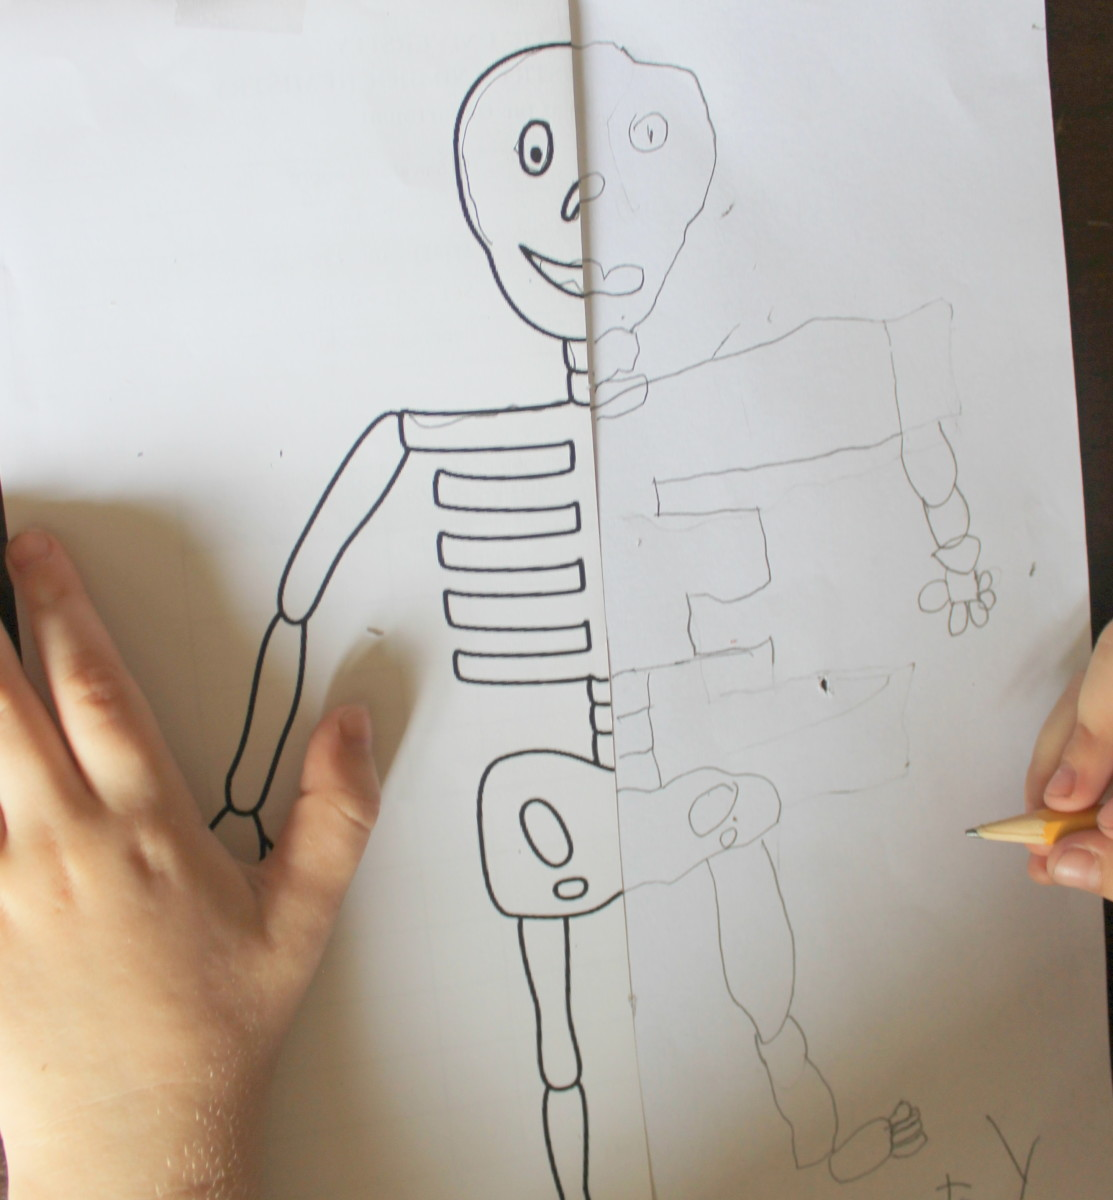 Mirror image sketch of a skeleton by a child who just turned 5